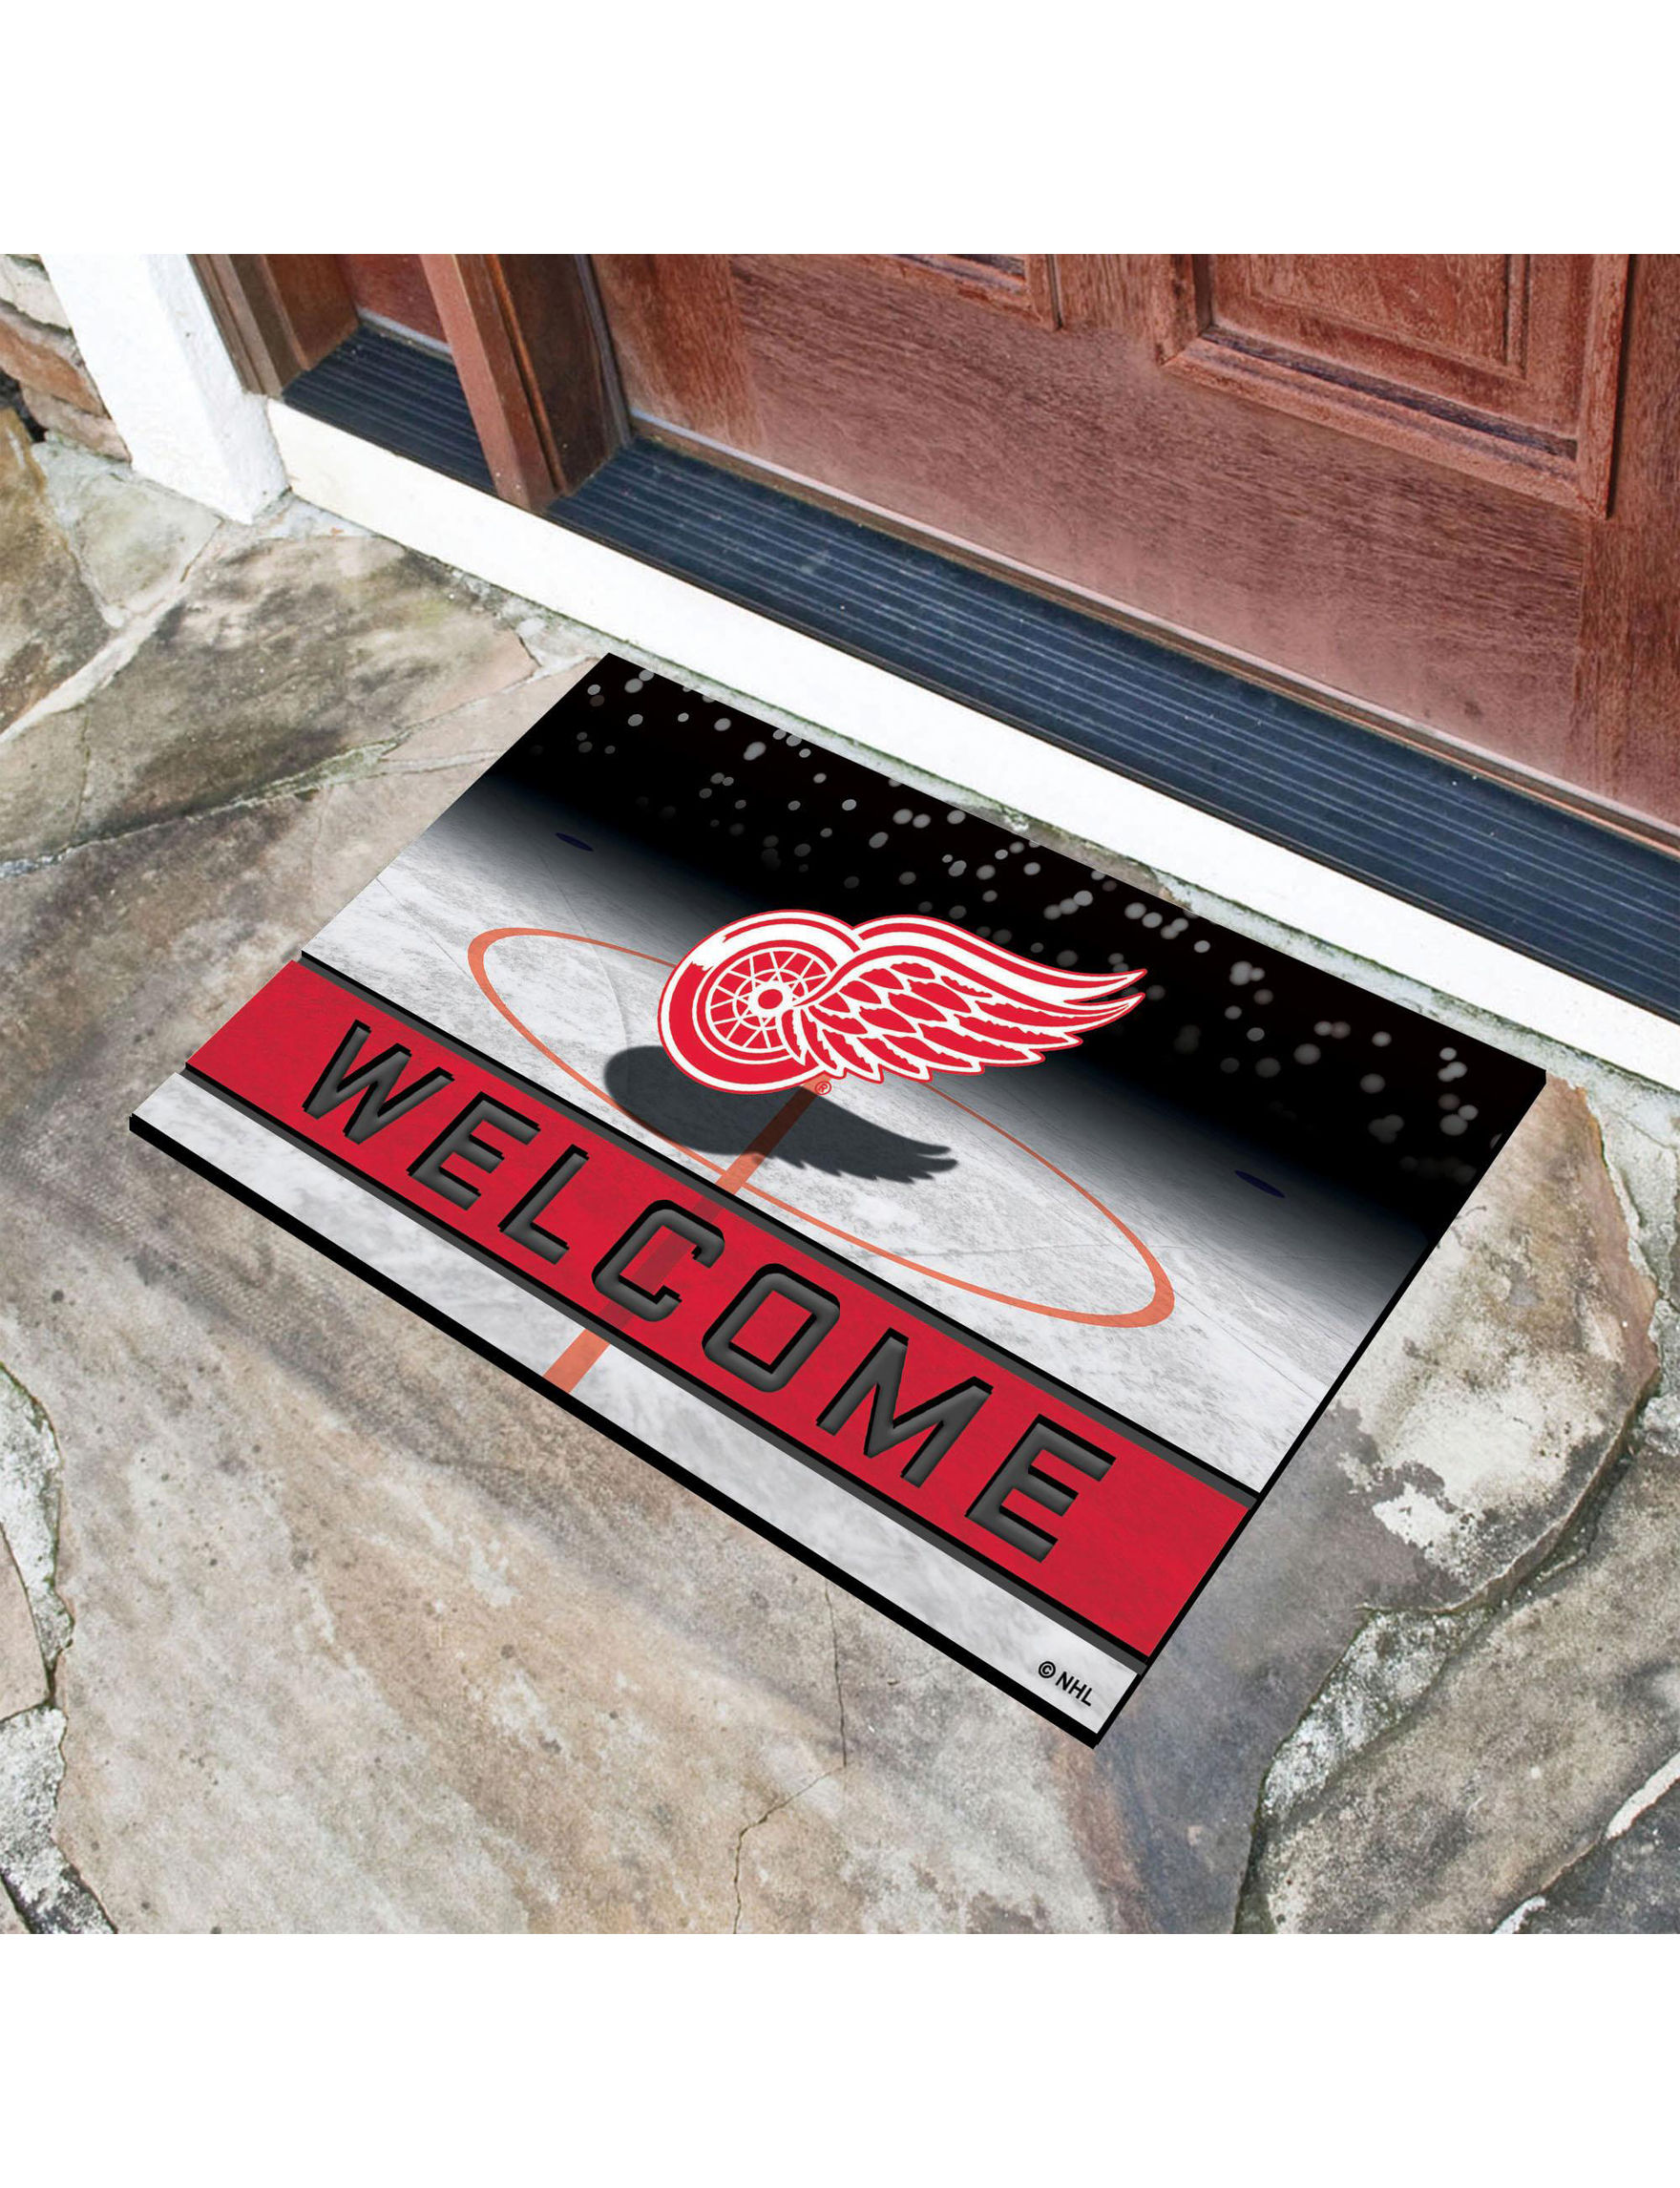 Fanmats Red / White Outdoor Rugs & Doormats Outdoor Decor